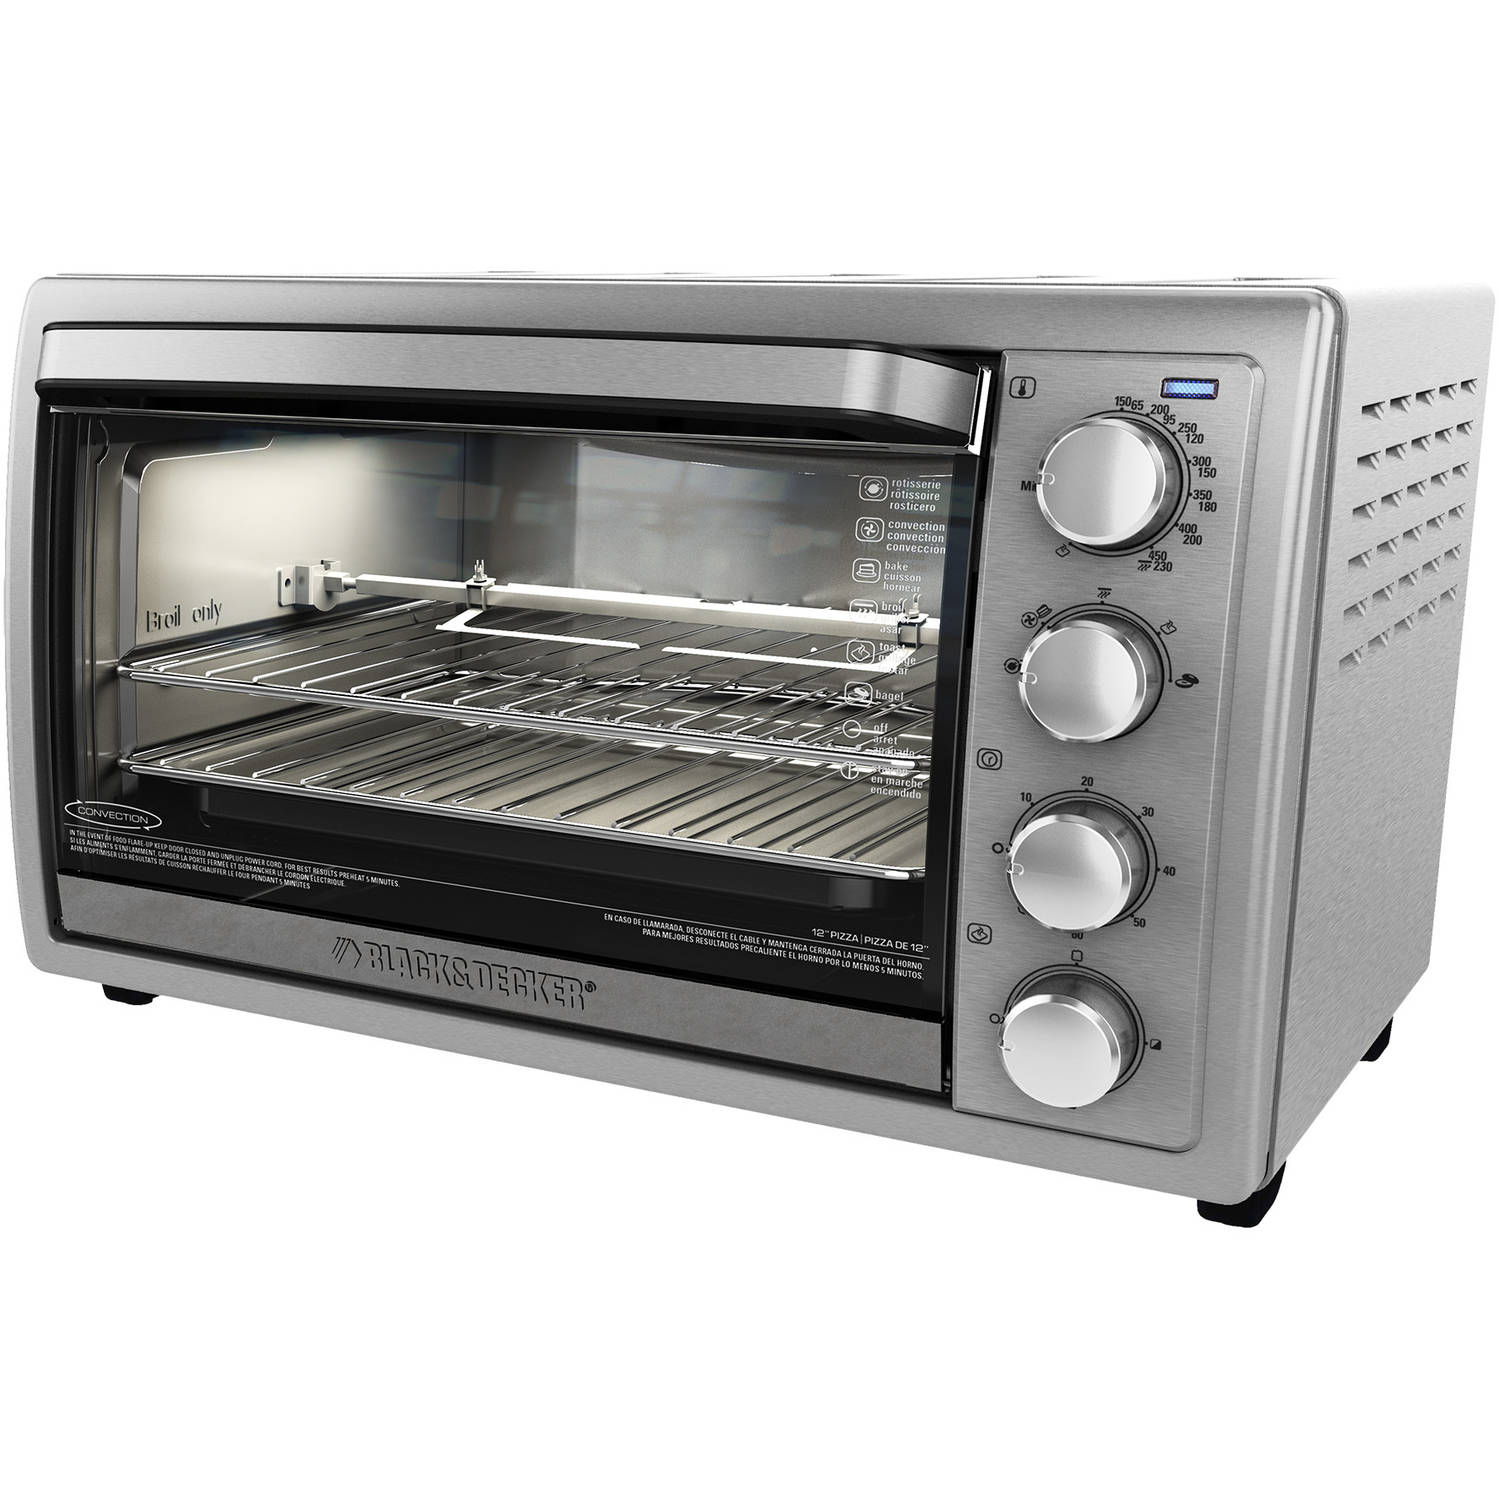 BLACKDECKER 9 Slice Rotisserie Convection Countertop Oven